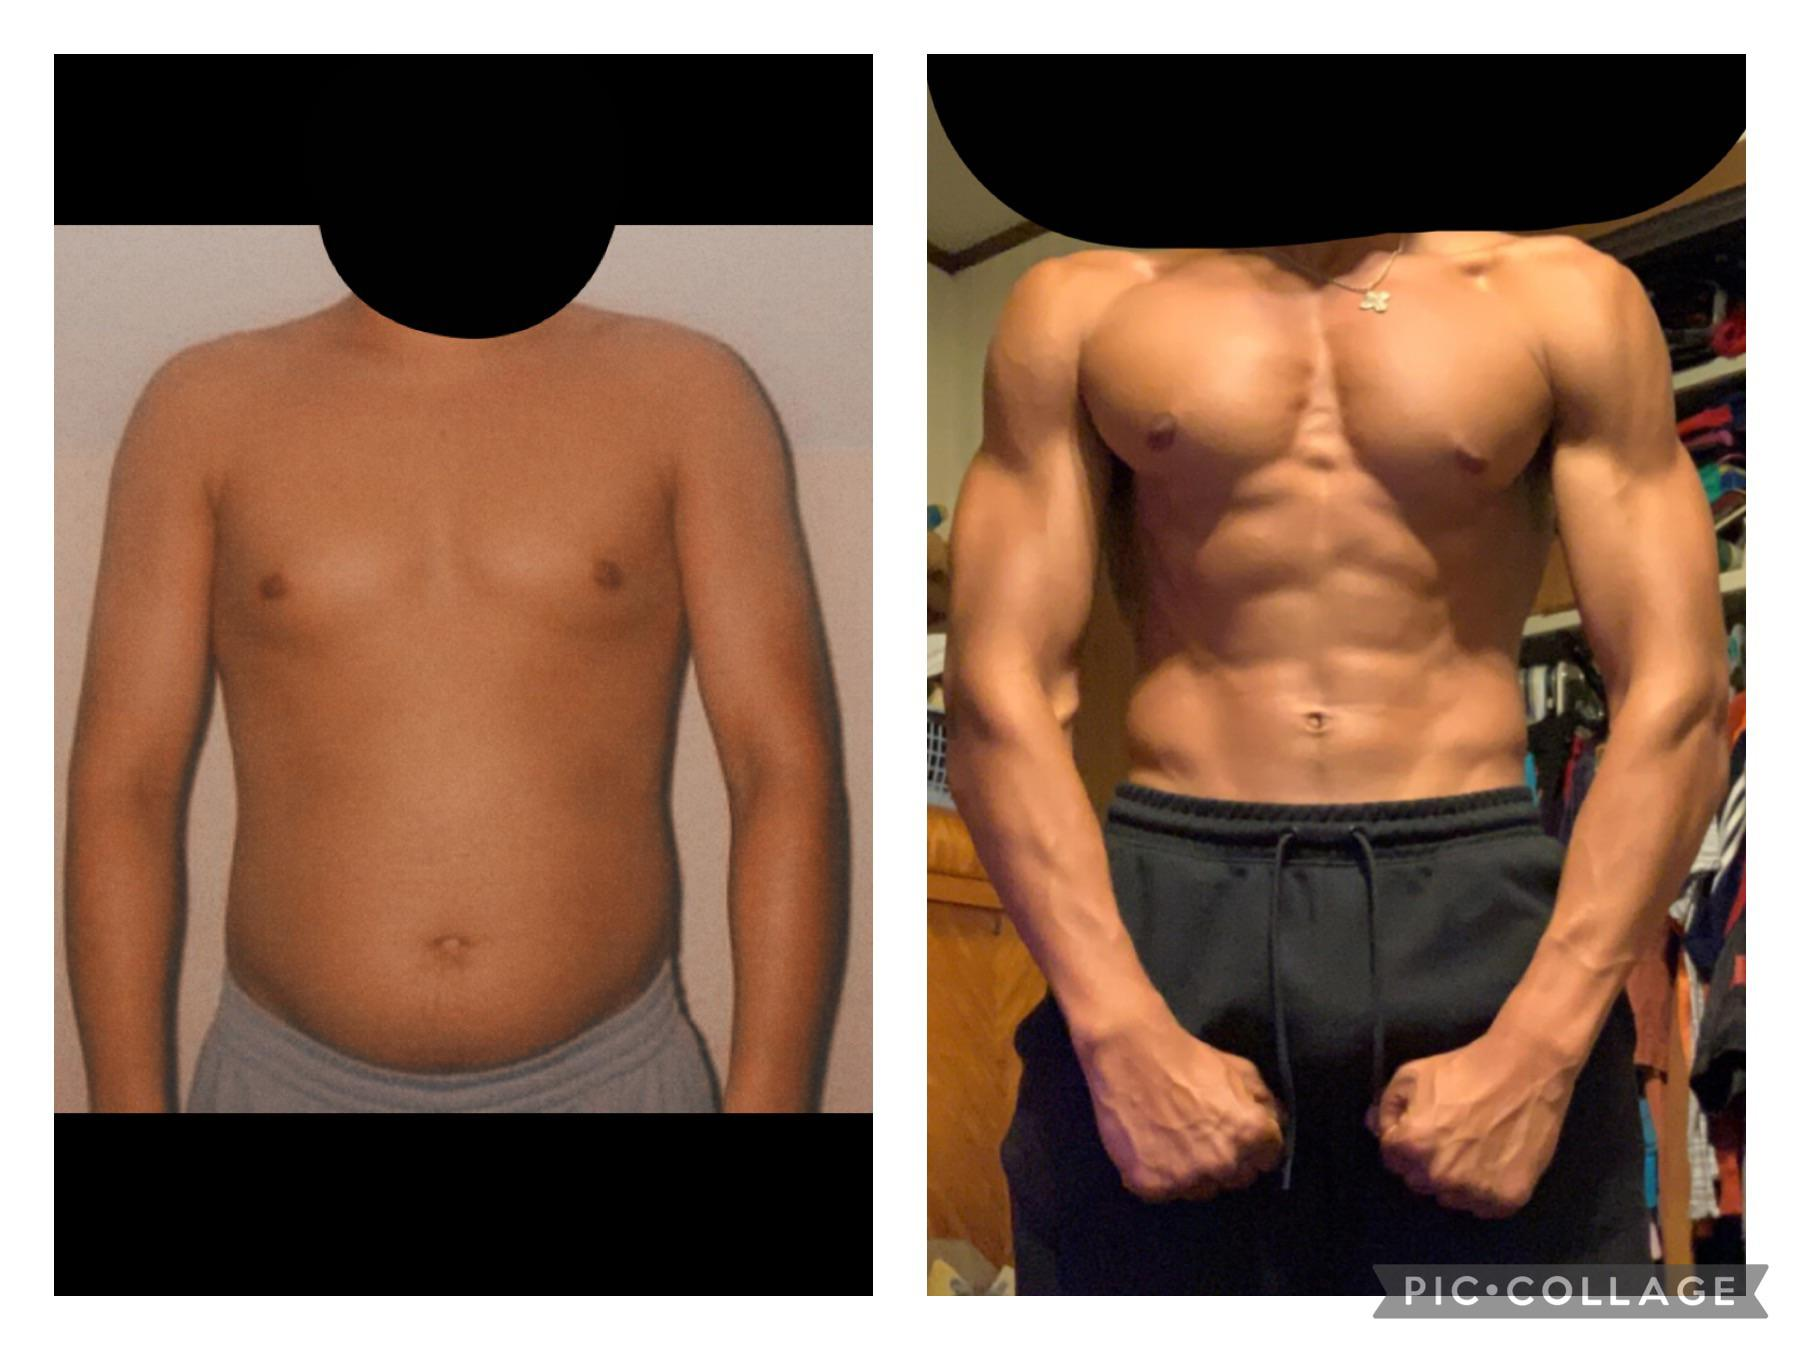 6 foot 1 Male 30 lbs Muscle Gain Before and After 160 lbs to 190 lbs